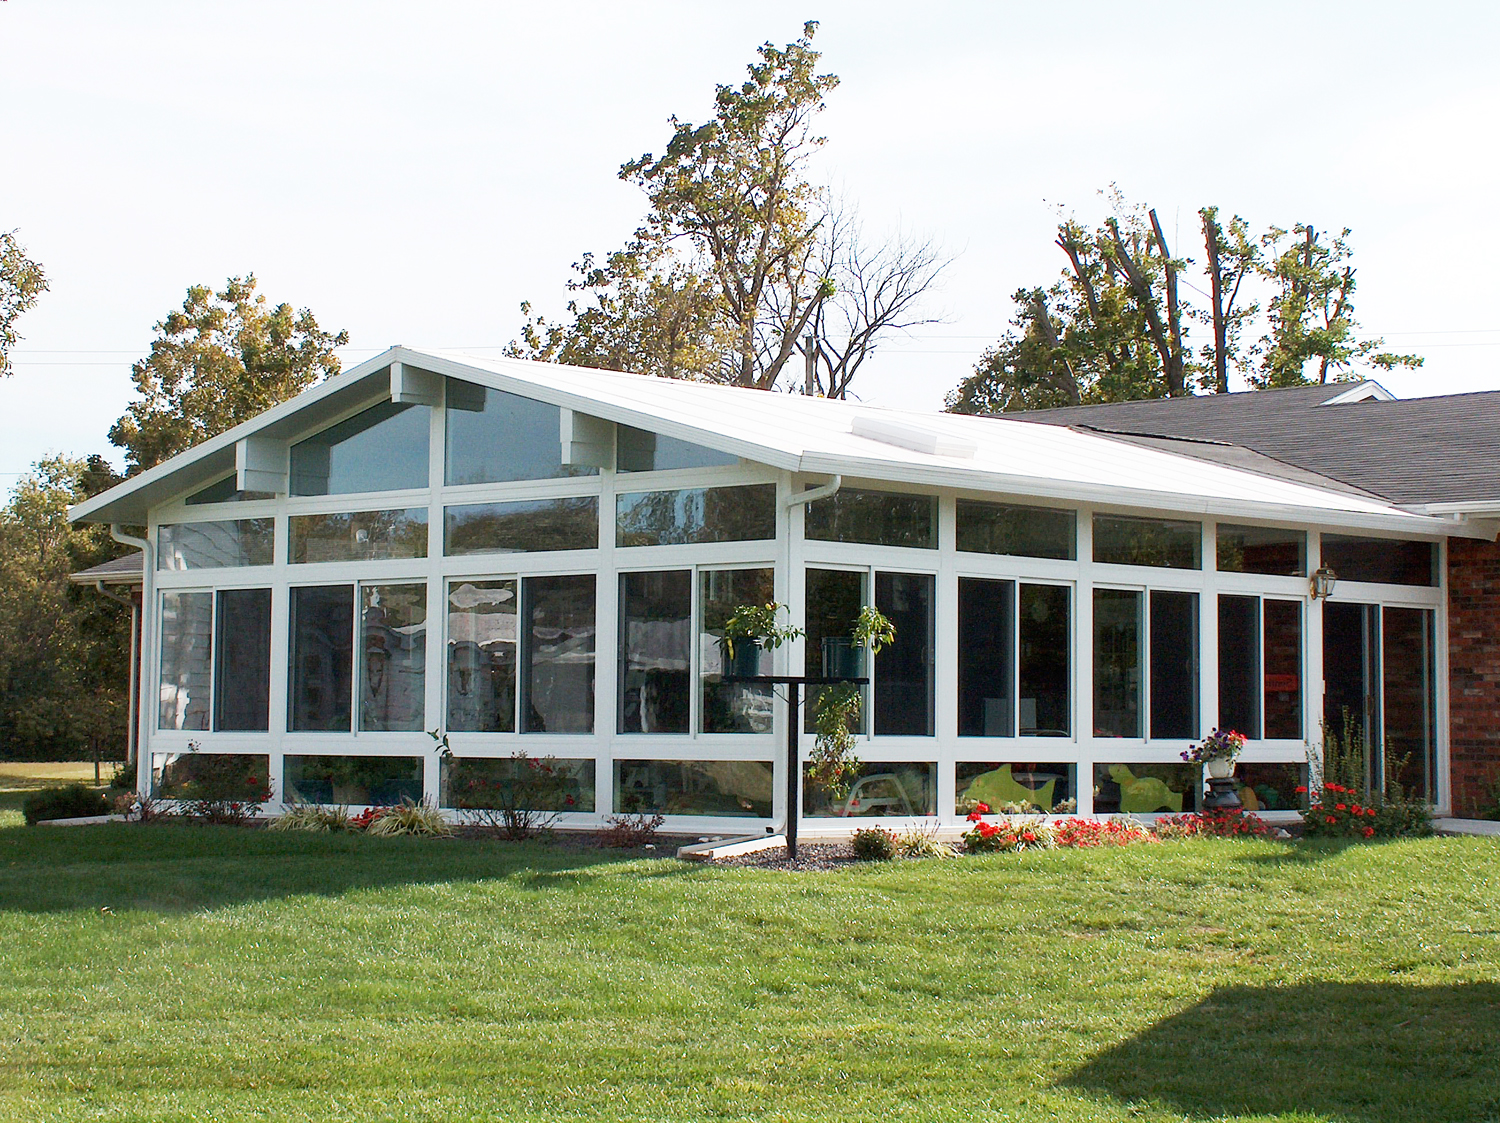 Betterliving fabric shades marketing patio cover recent posts sunrooms - Gable Style Sunroom By Betterliving Patio Sunrooms Of Pittsburgh